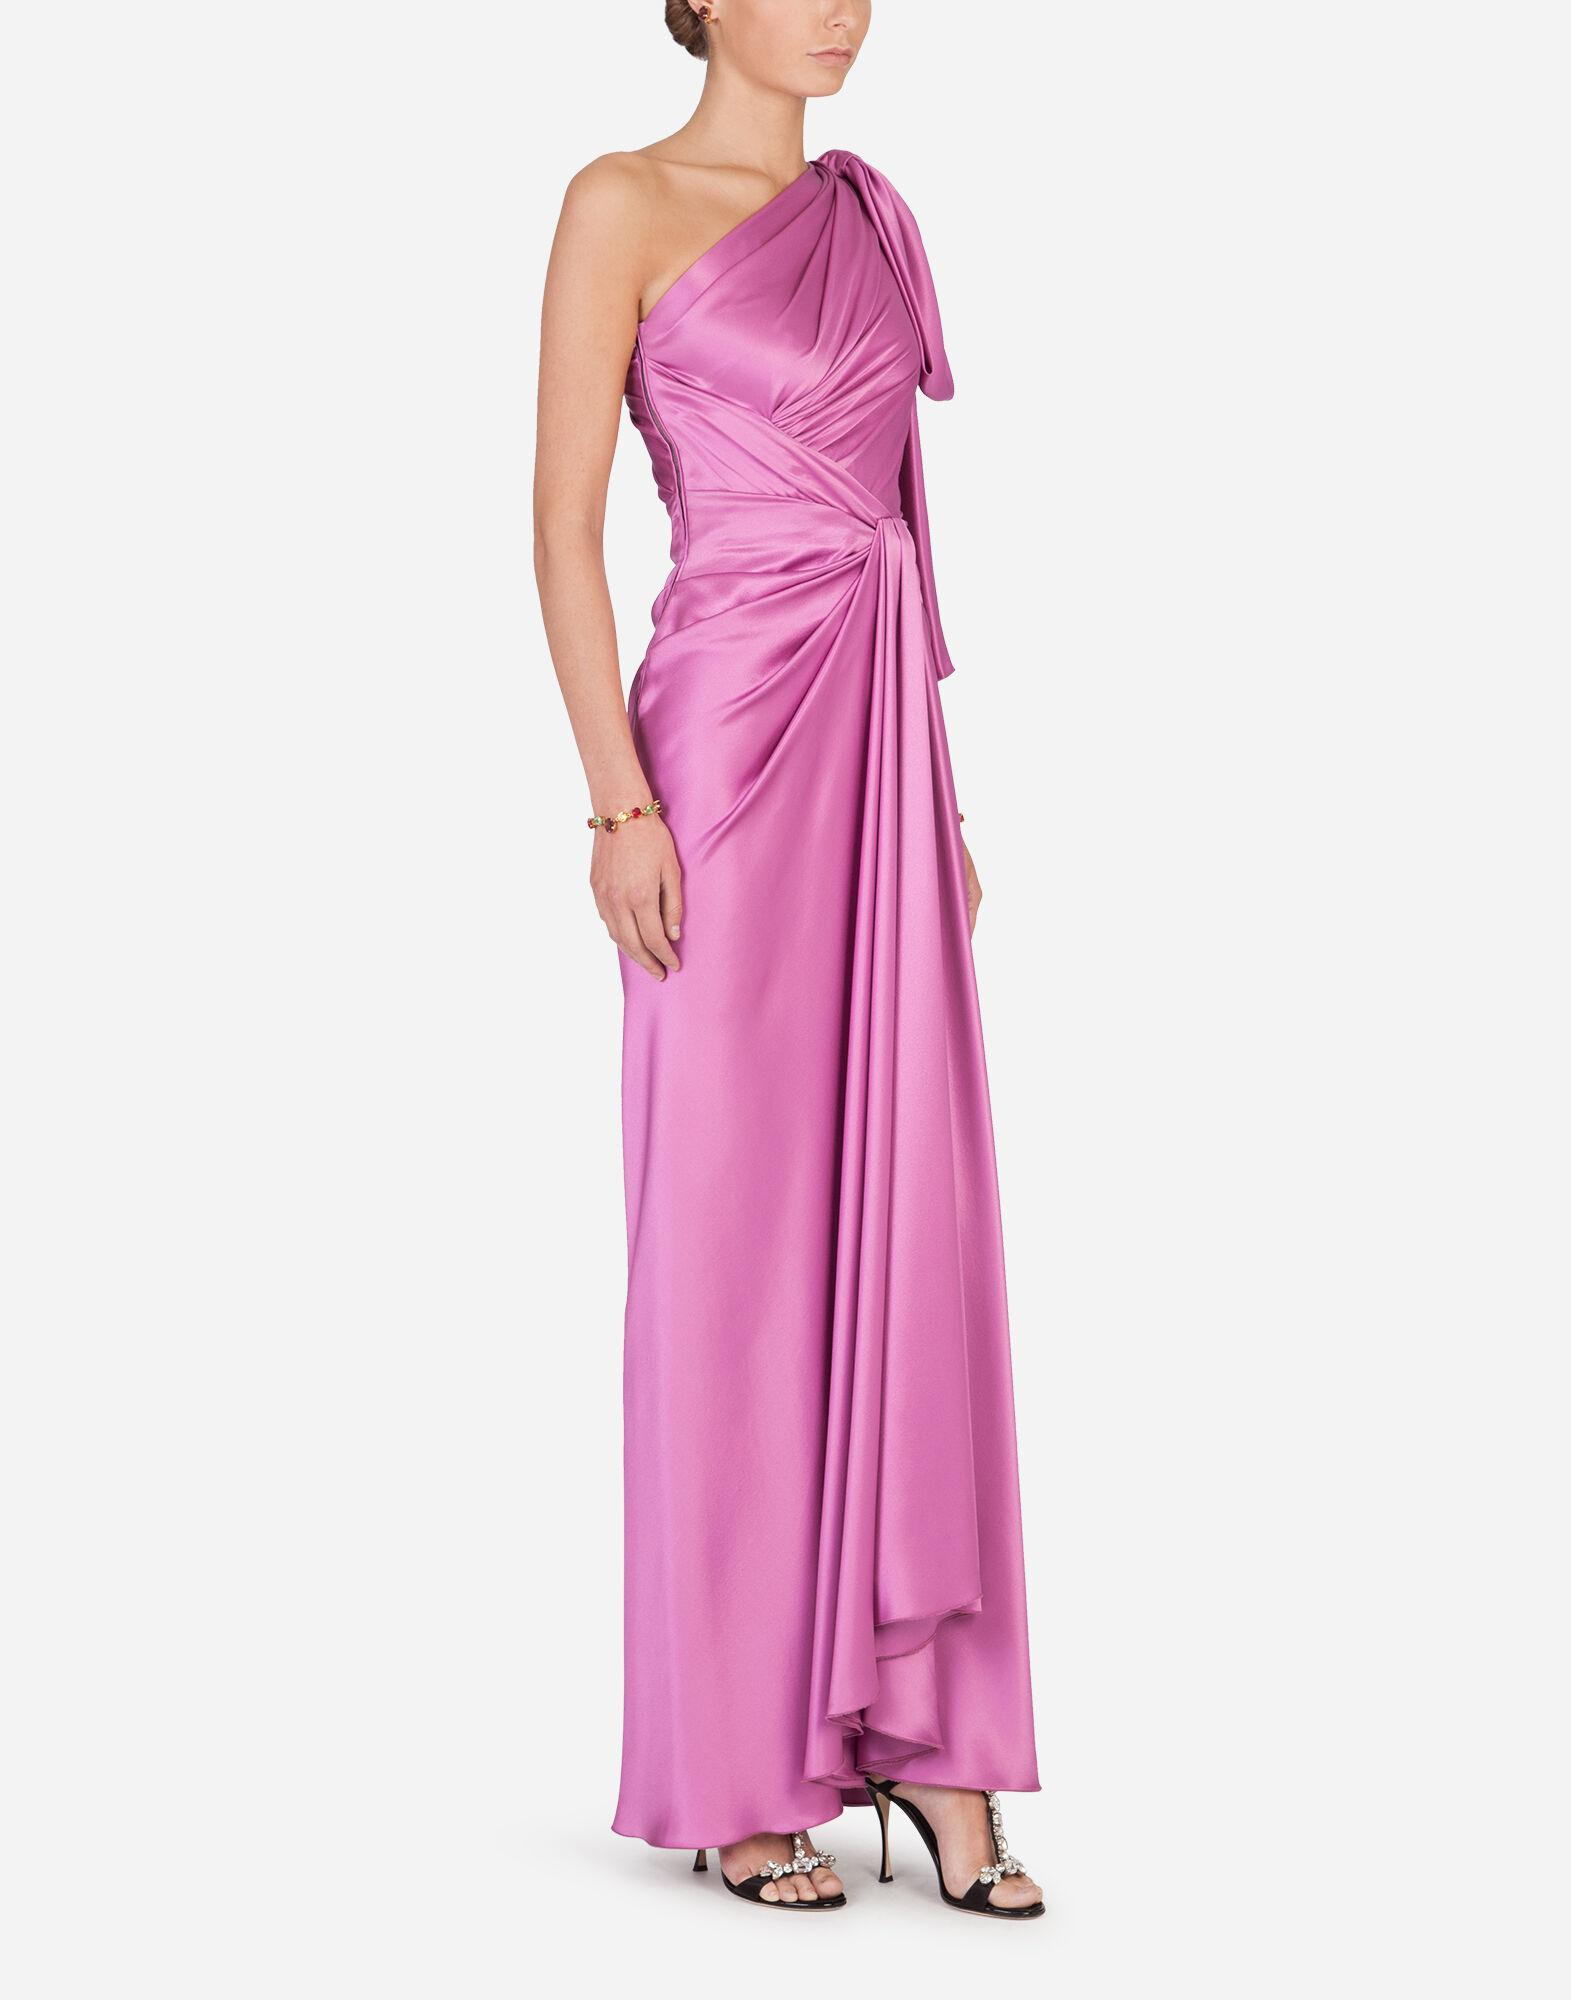 Long one-shoulder silk dress with bow detail 5